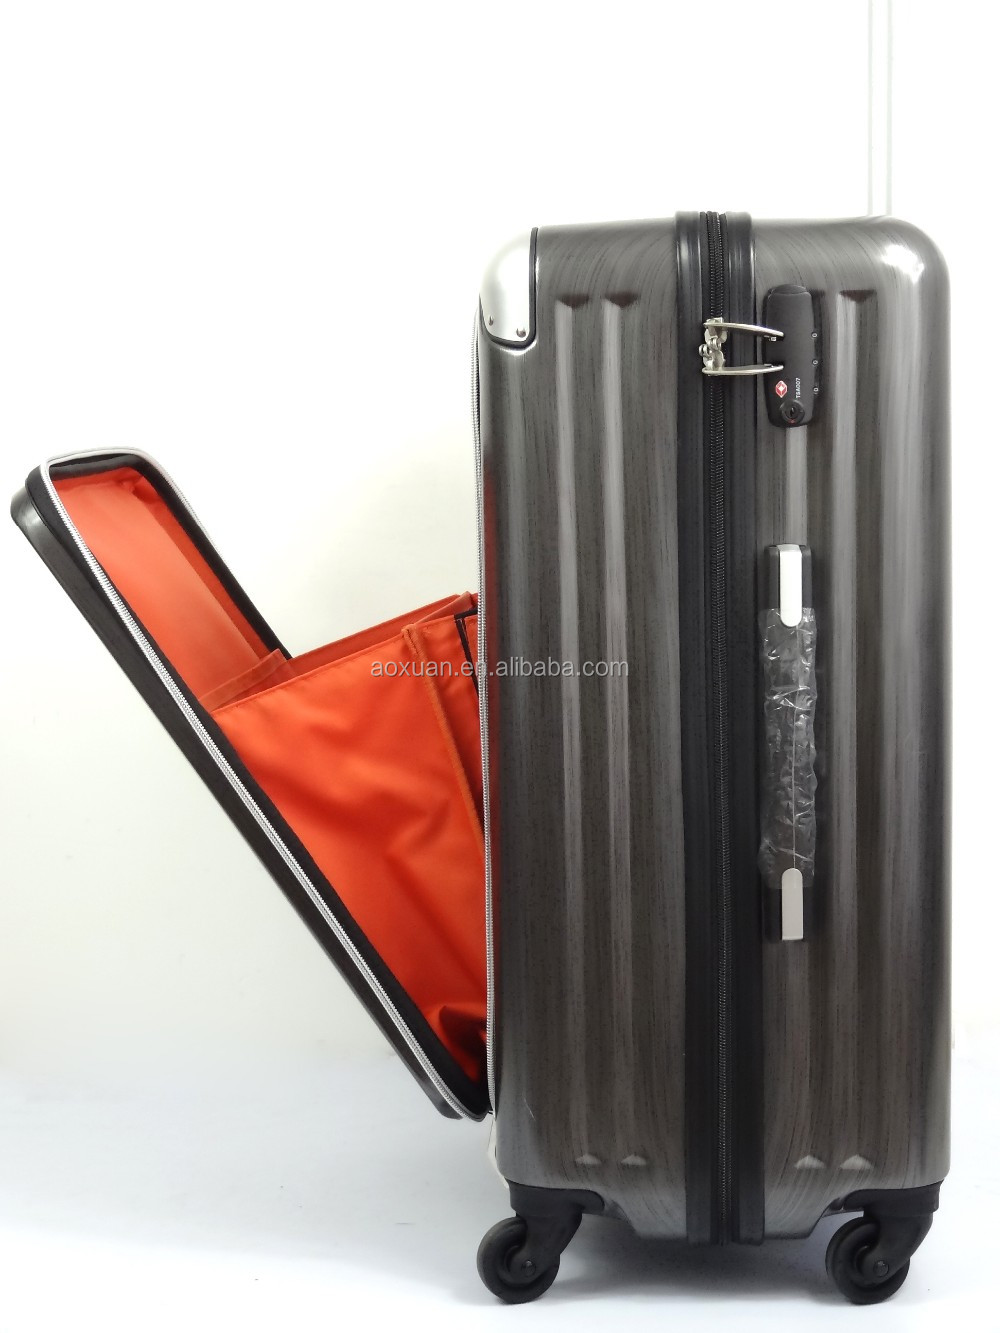 front pocket luggage front pocket zippered luggage abs pc luggage